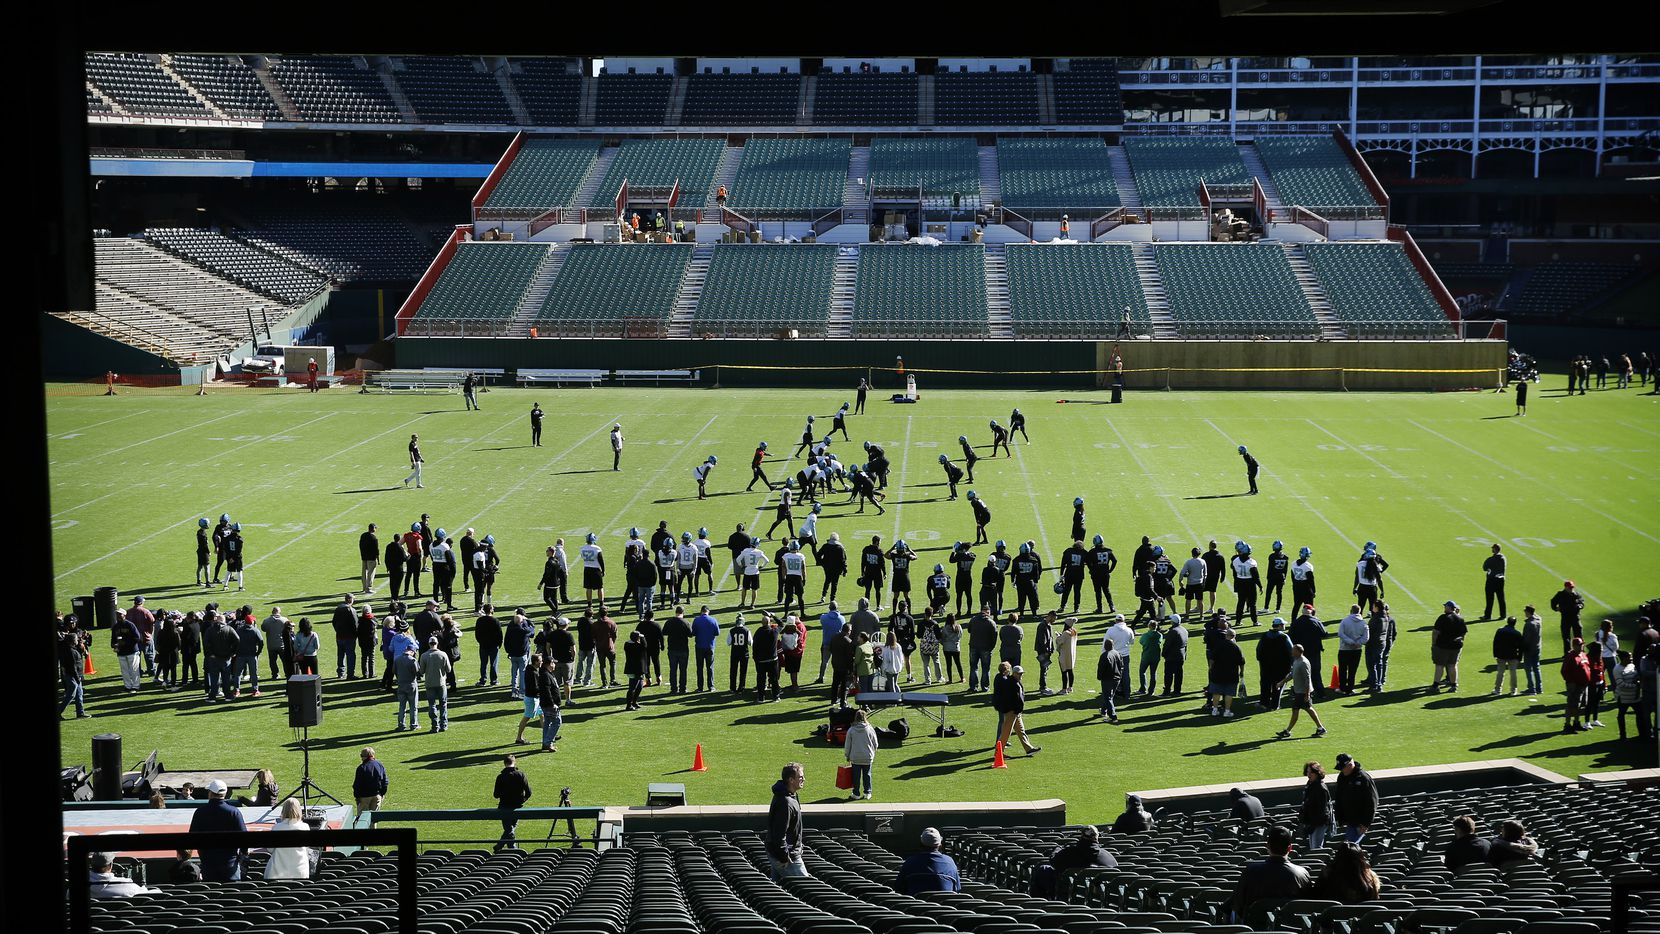 The XFL's Dallas Renegades football team practices before fans on the newly constructed football field at Globe Life Park in Arlington, Texas, Saturday, February 1, 2020. Stands (pictured) are being constructed in left field of the old baseball stadium. Their season starts February 9.